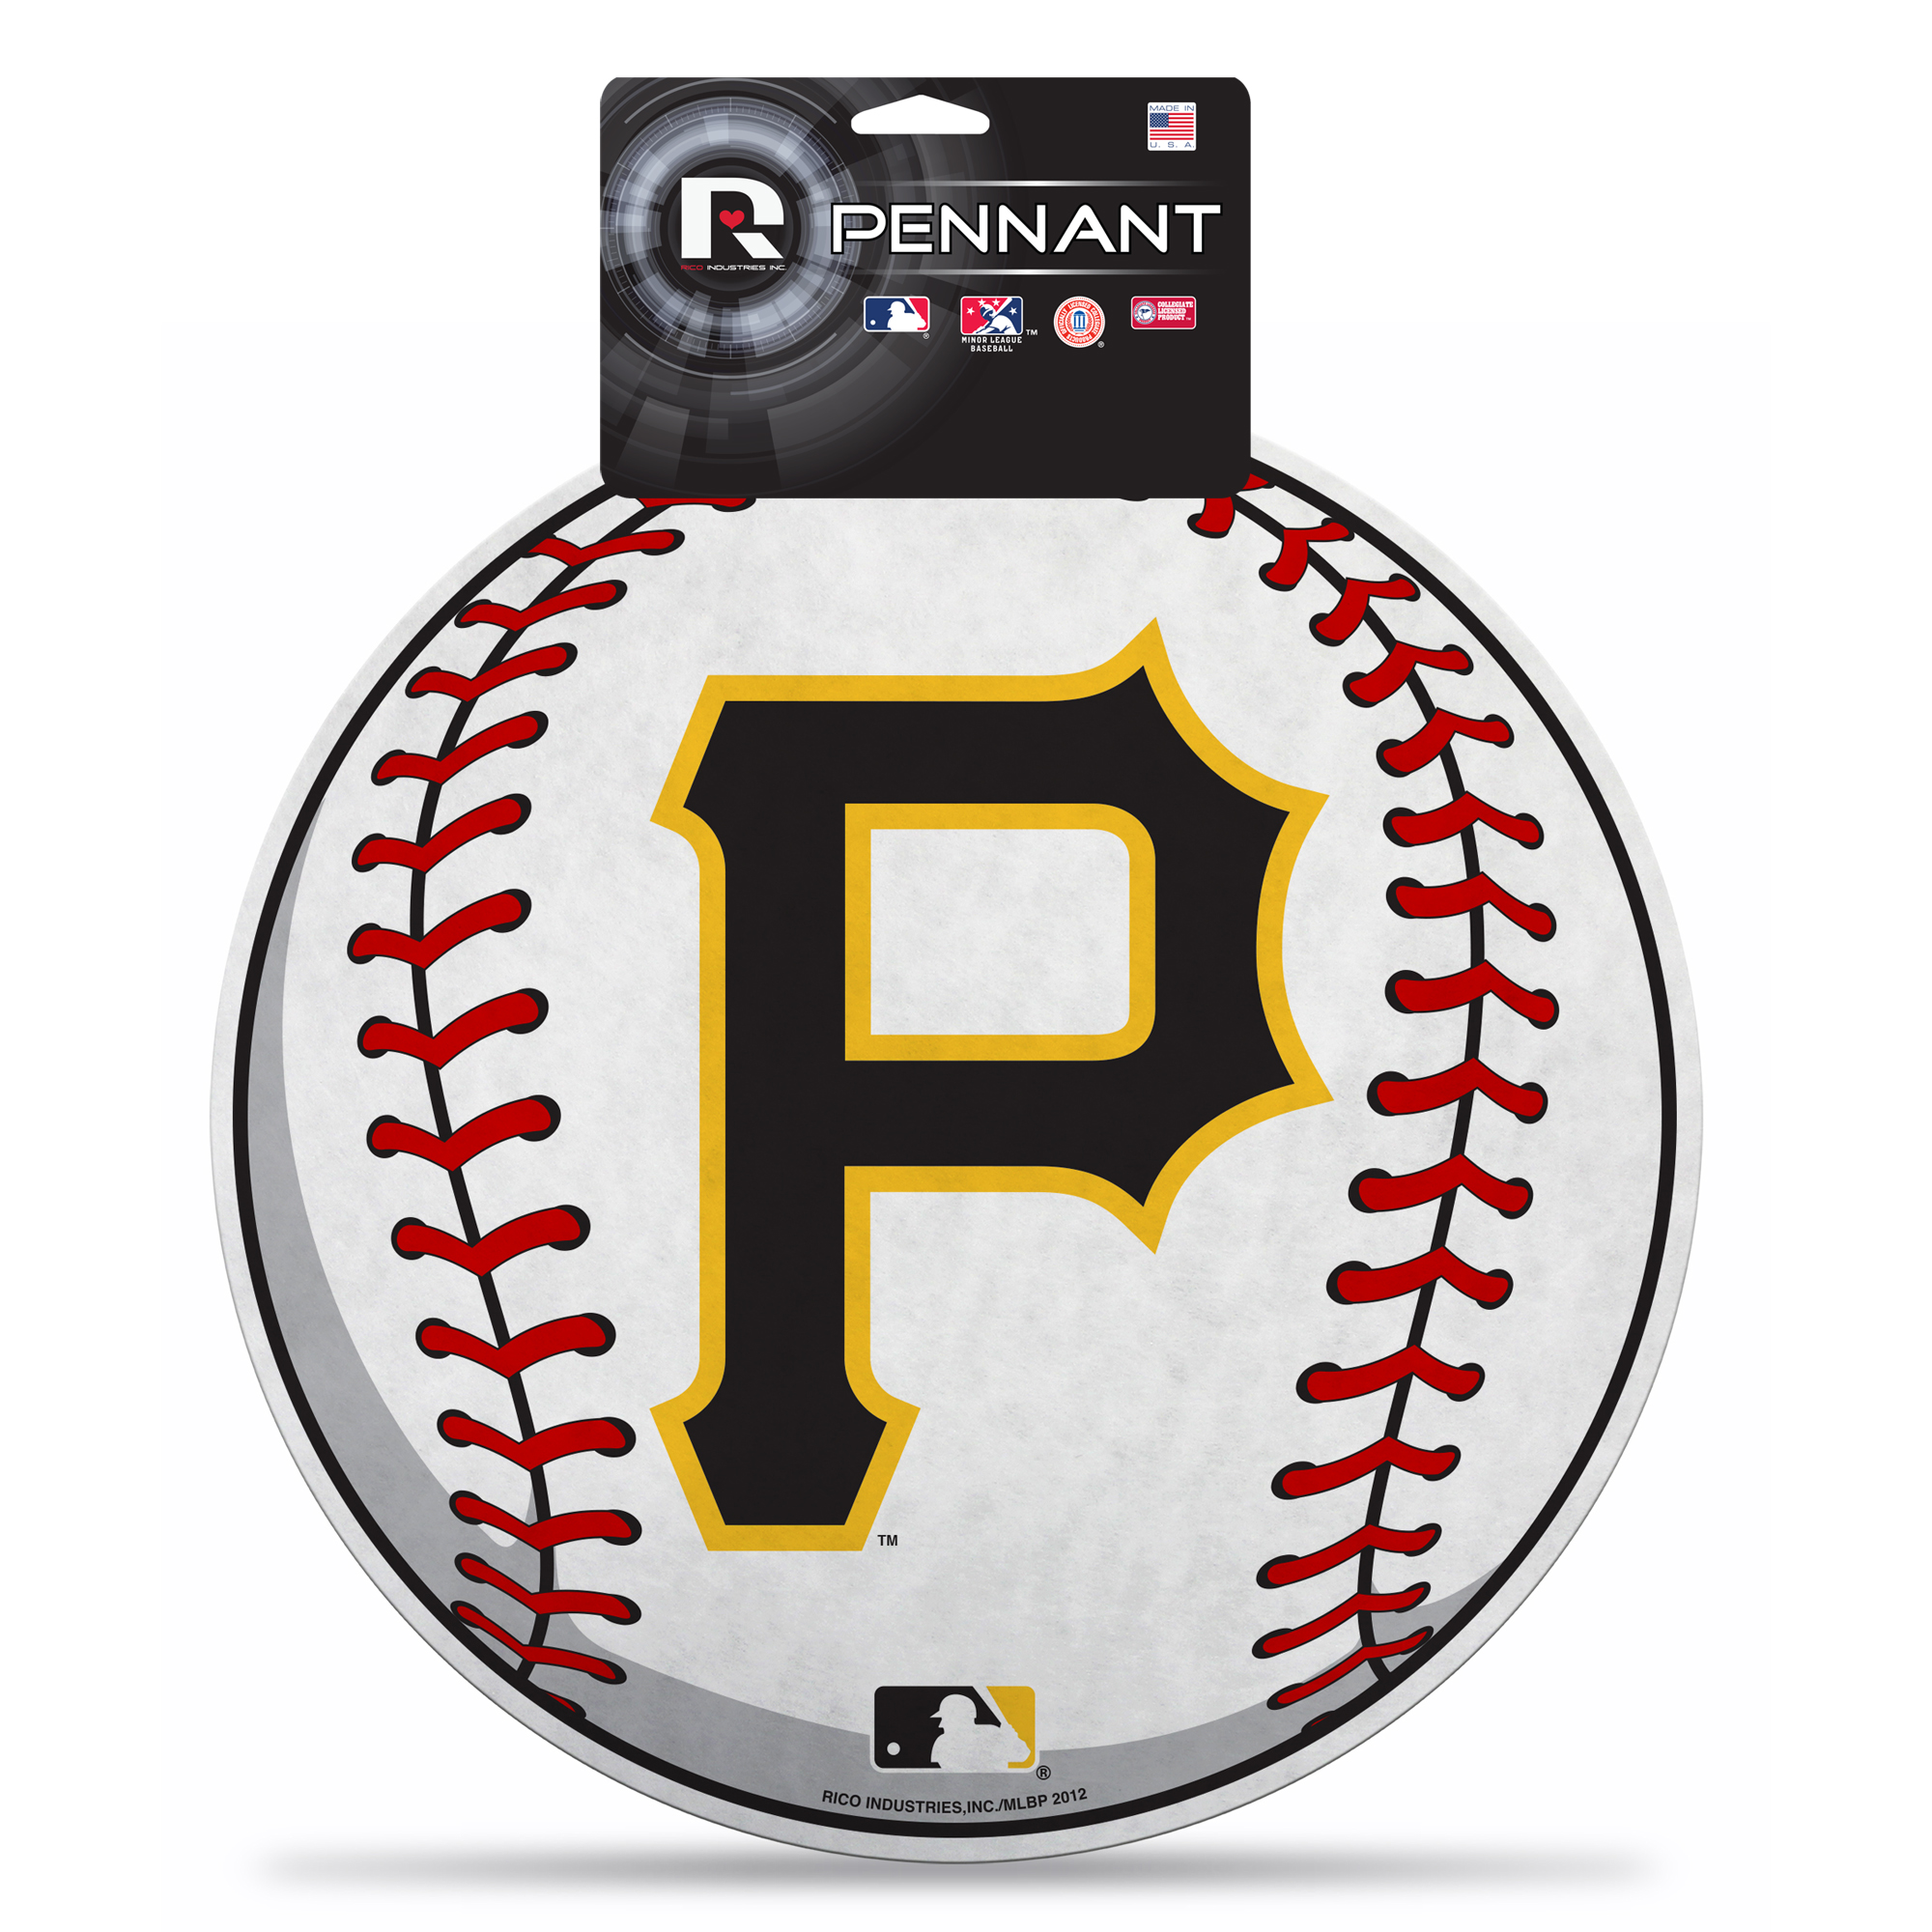 Pittsburgh Pirates Official MLB 14 inch x 14 inch  Die Cut Pennant by Rico